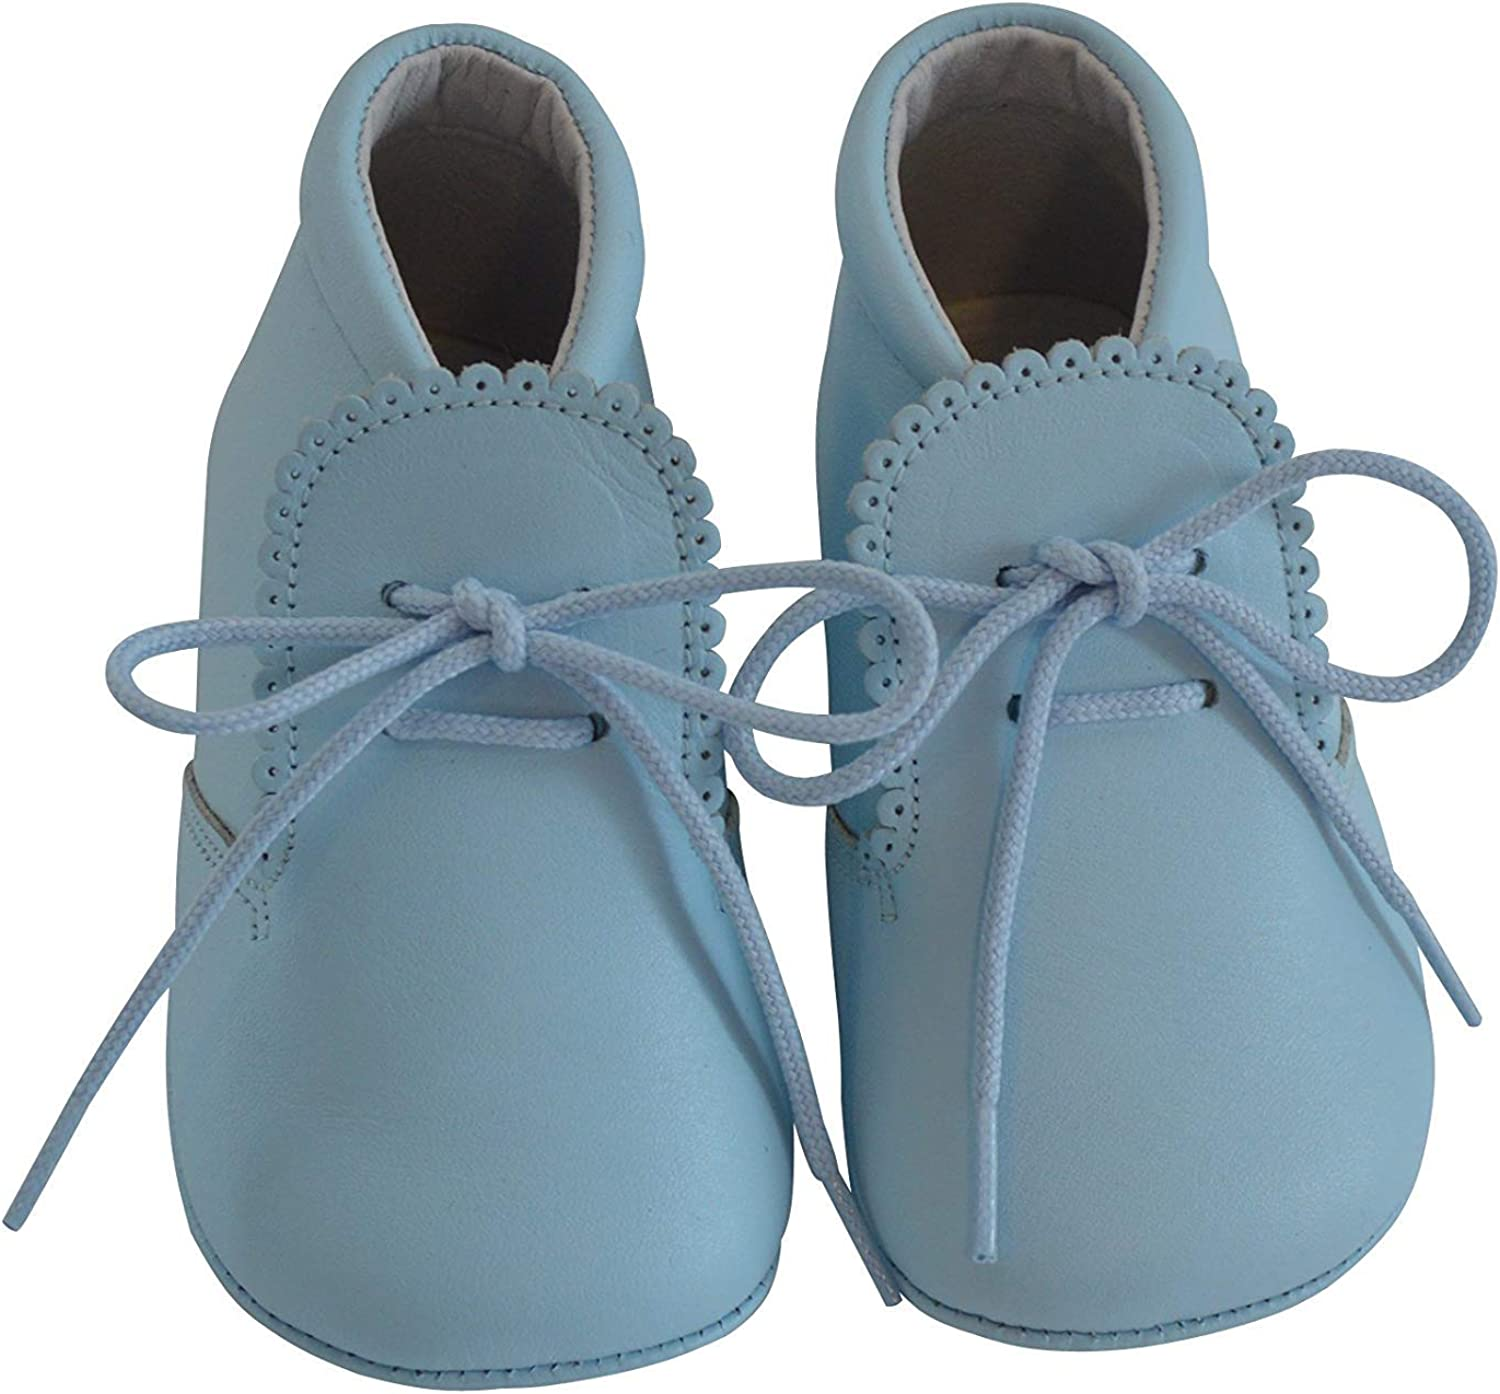 Baby Boys Leather Soft Sole Shoes w/Laces - Leather